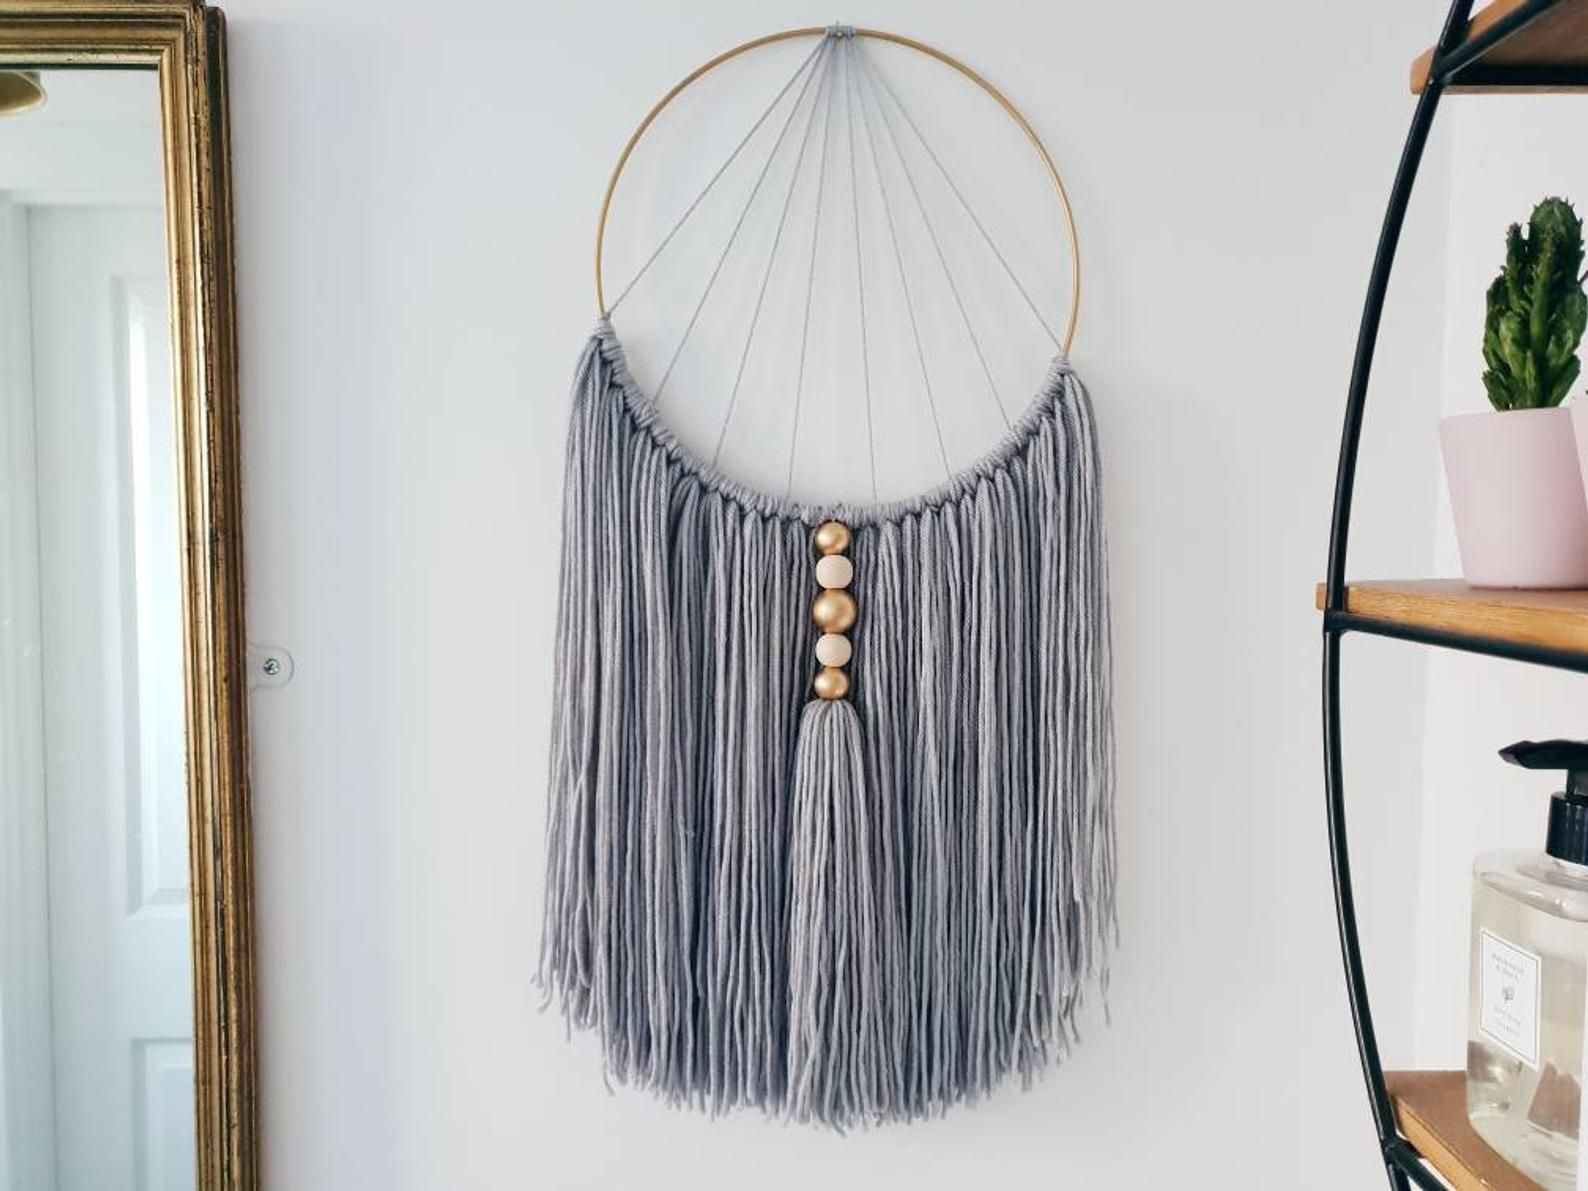 Grey Macrame Wall Hanging Home Accessory With Natural Wooden